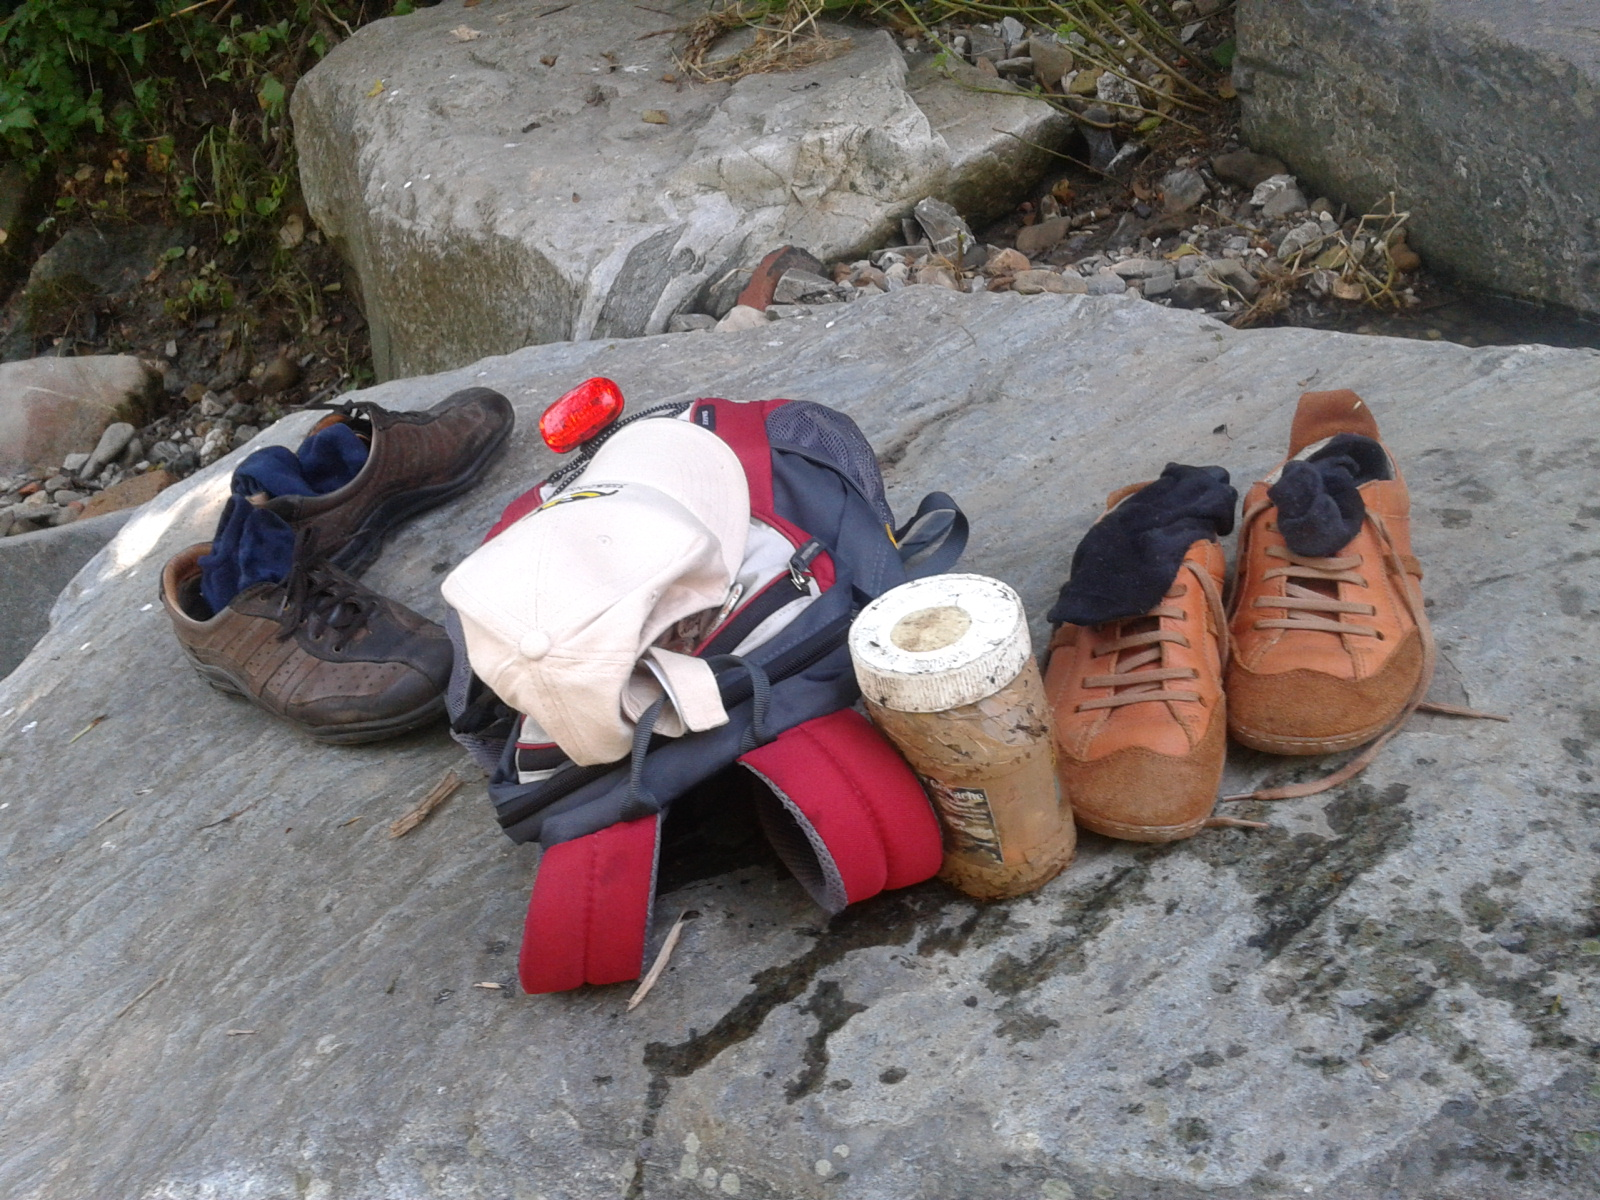 A backpack, baseball cap, 2 pairs of shoes, and a geocache container sitting on a rock.